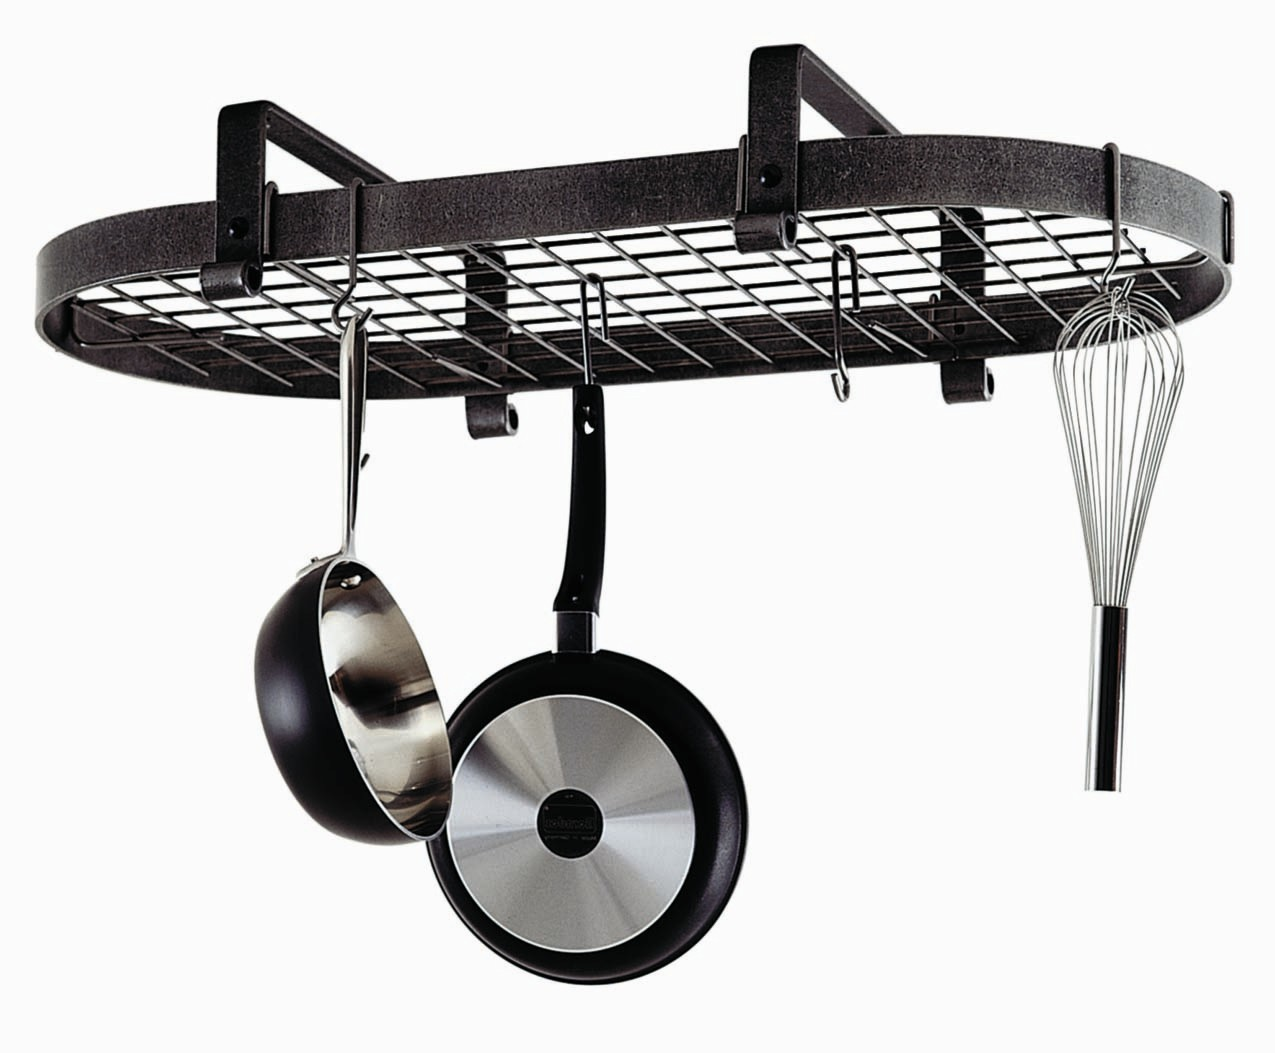 Enclume Hammered Steel Low Ceiling Oval Hanging Pot Rack